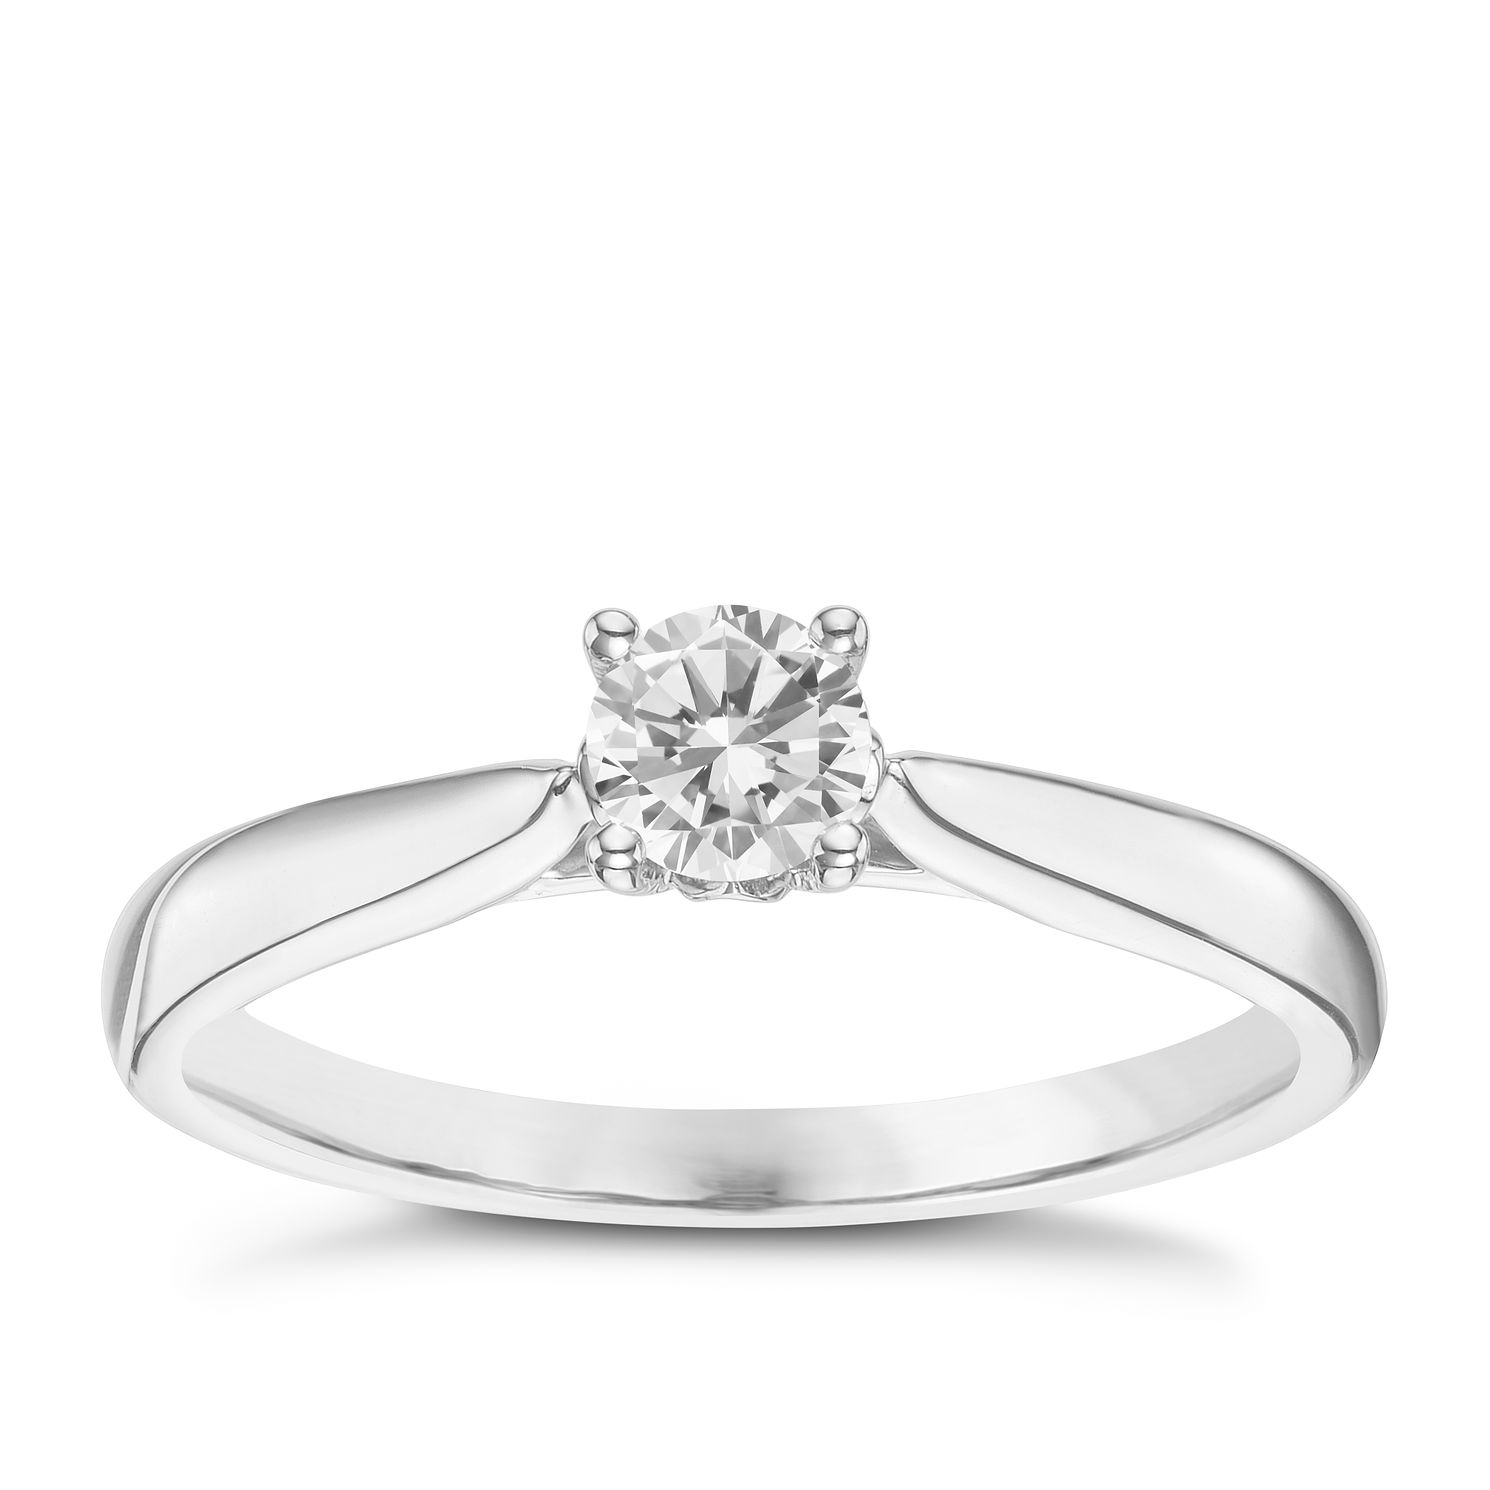 9ct White Gold 0.30ct Diamond Solitaire Ring - Product number 6248608